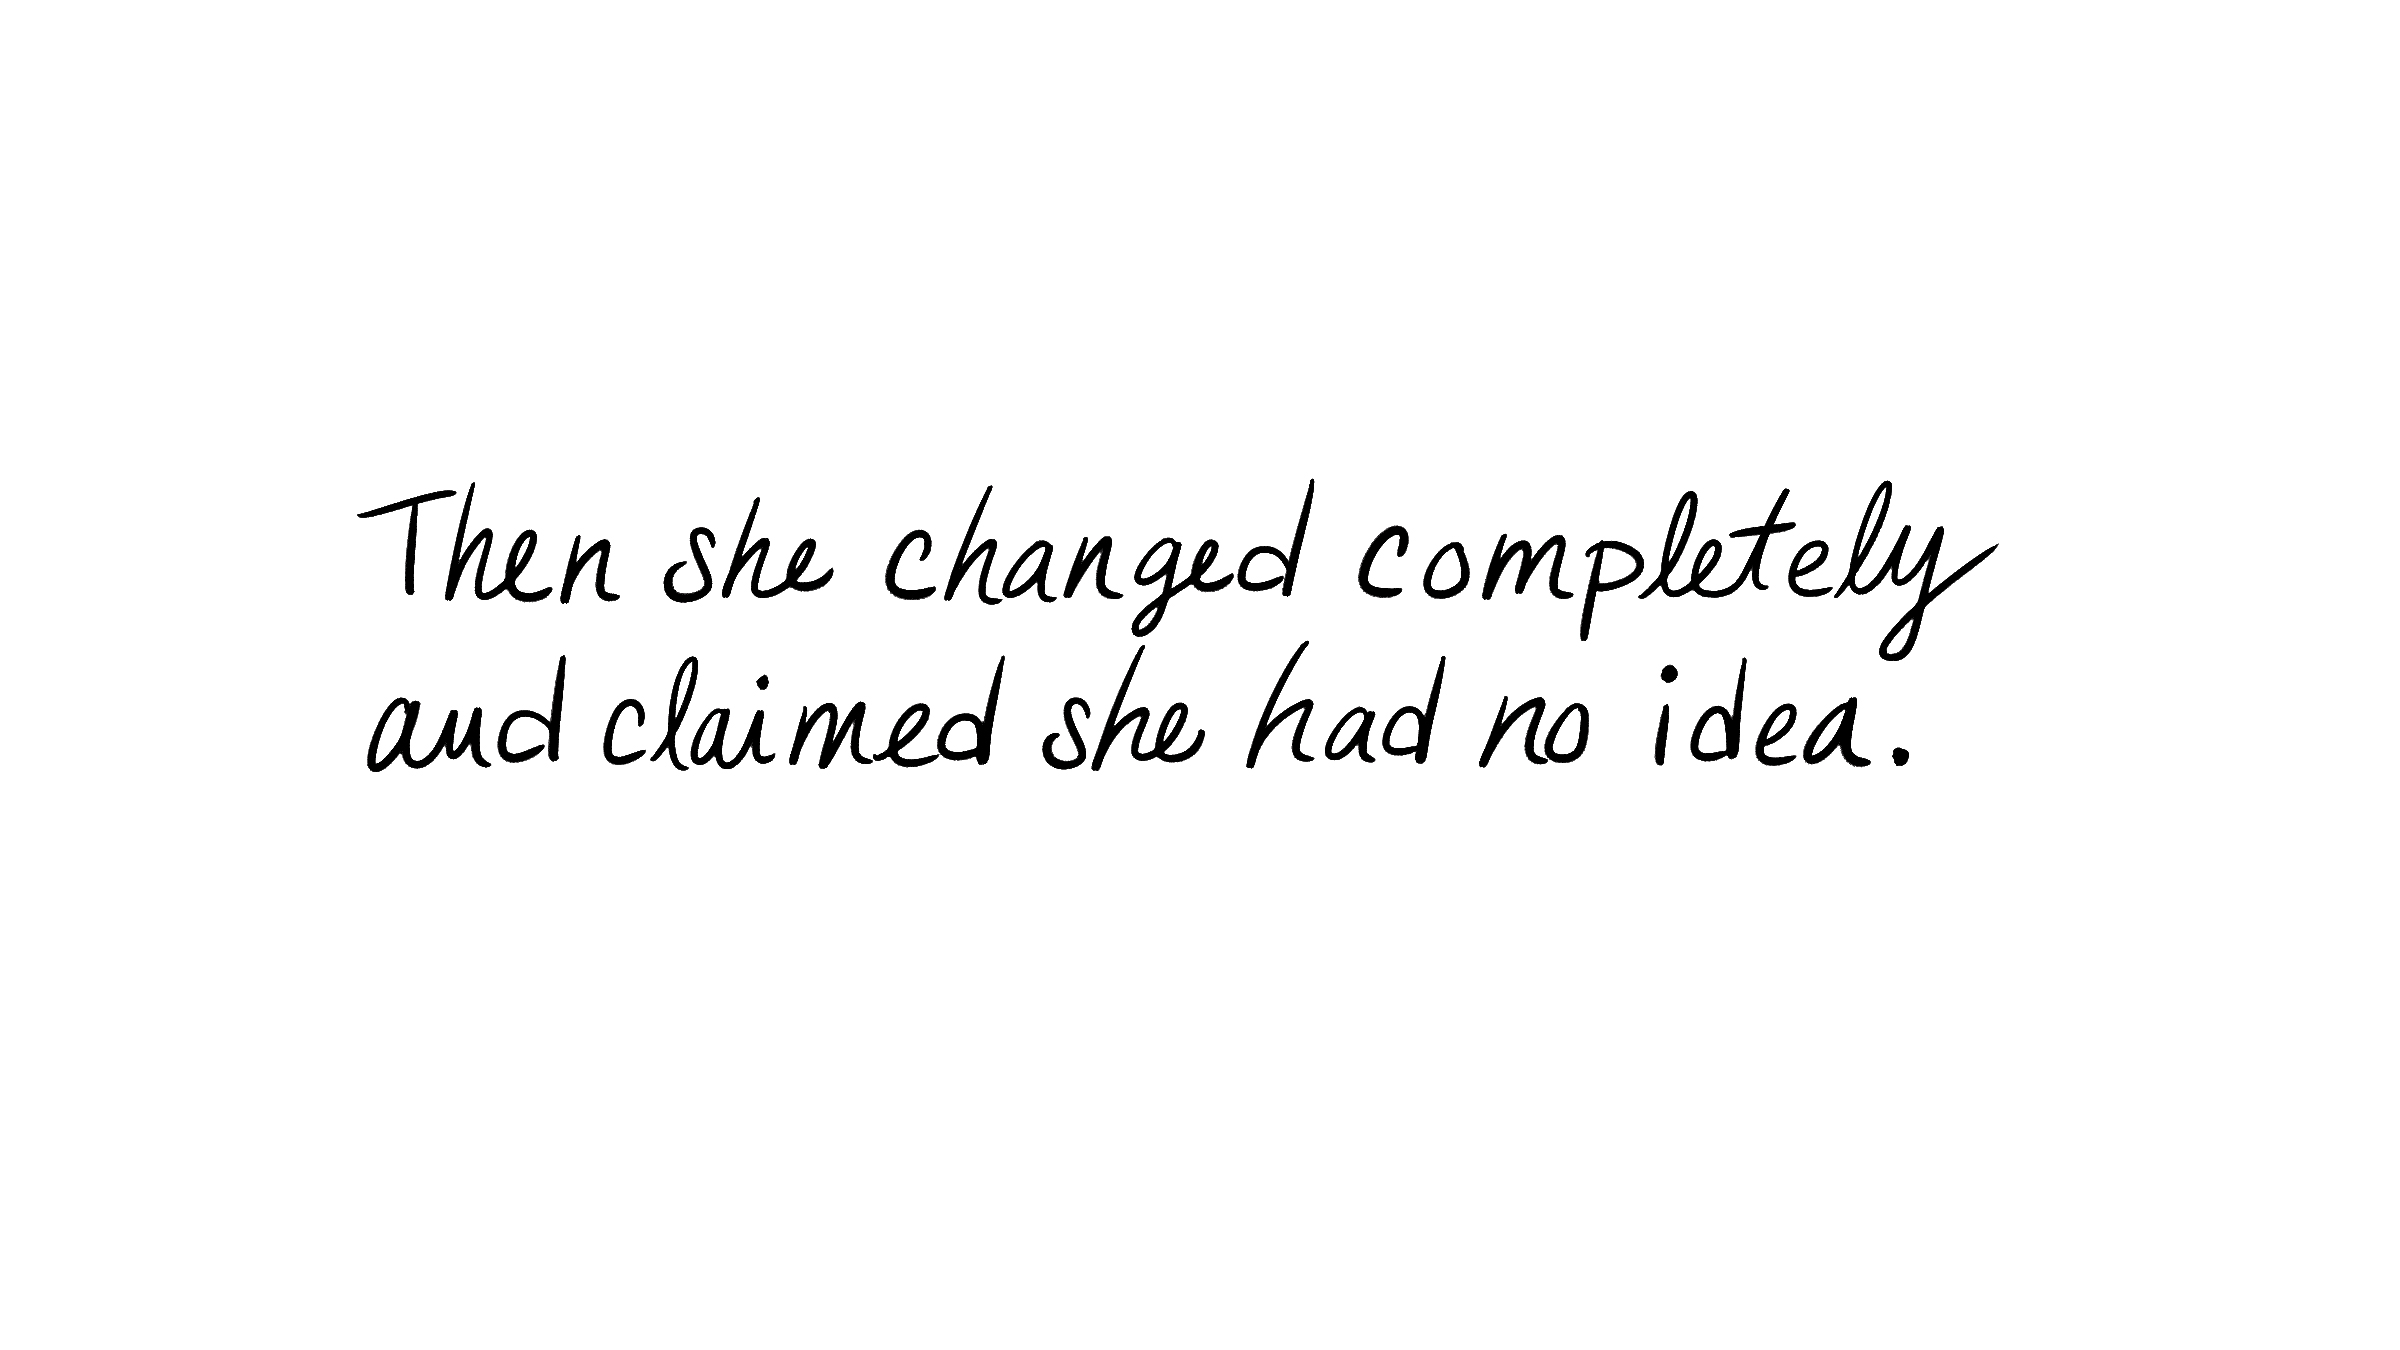 Then she changed completely and claimed she had no idea.